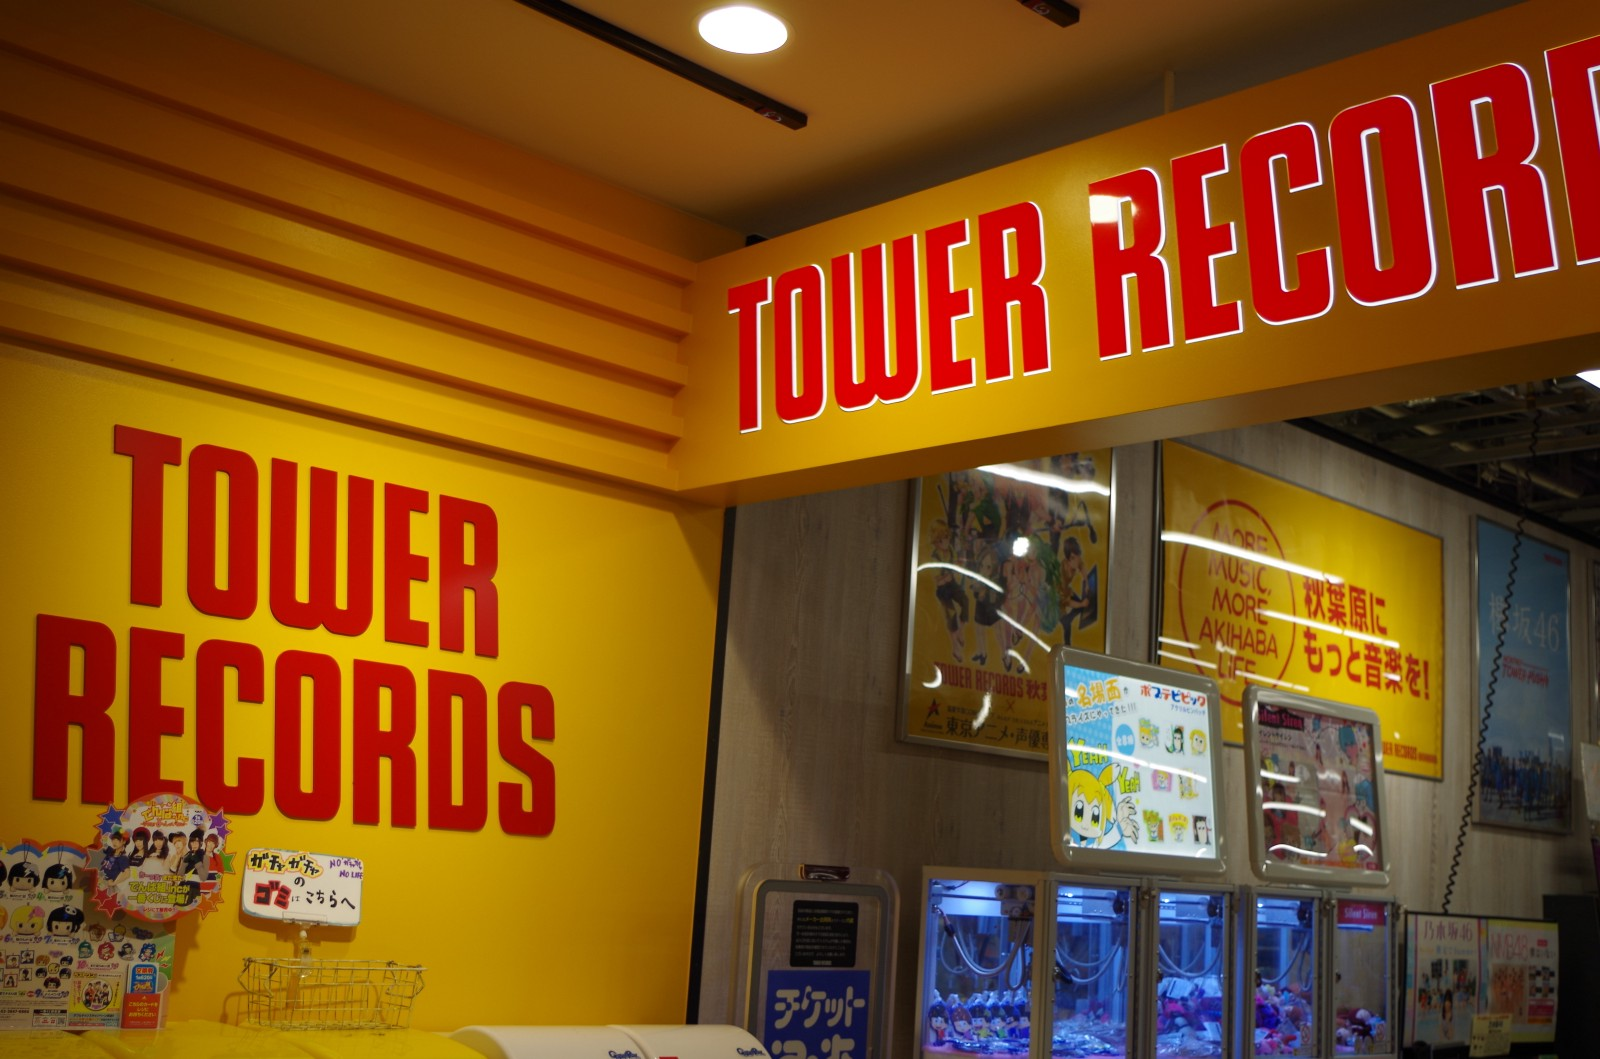 Tower Records in Yodobashi-Akiba